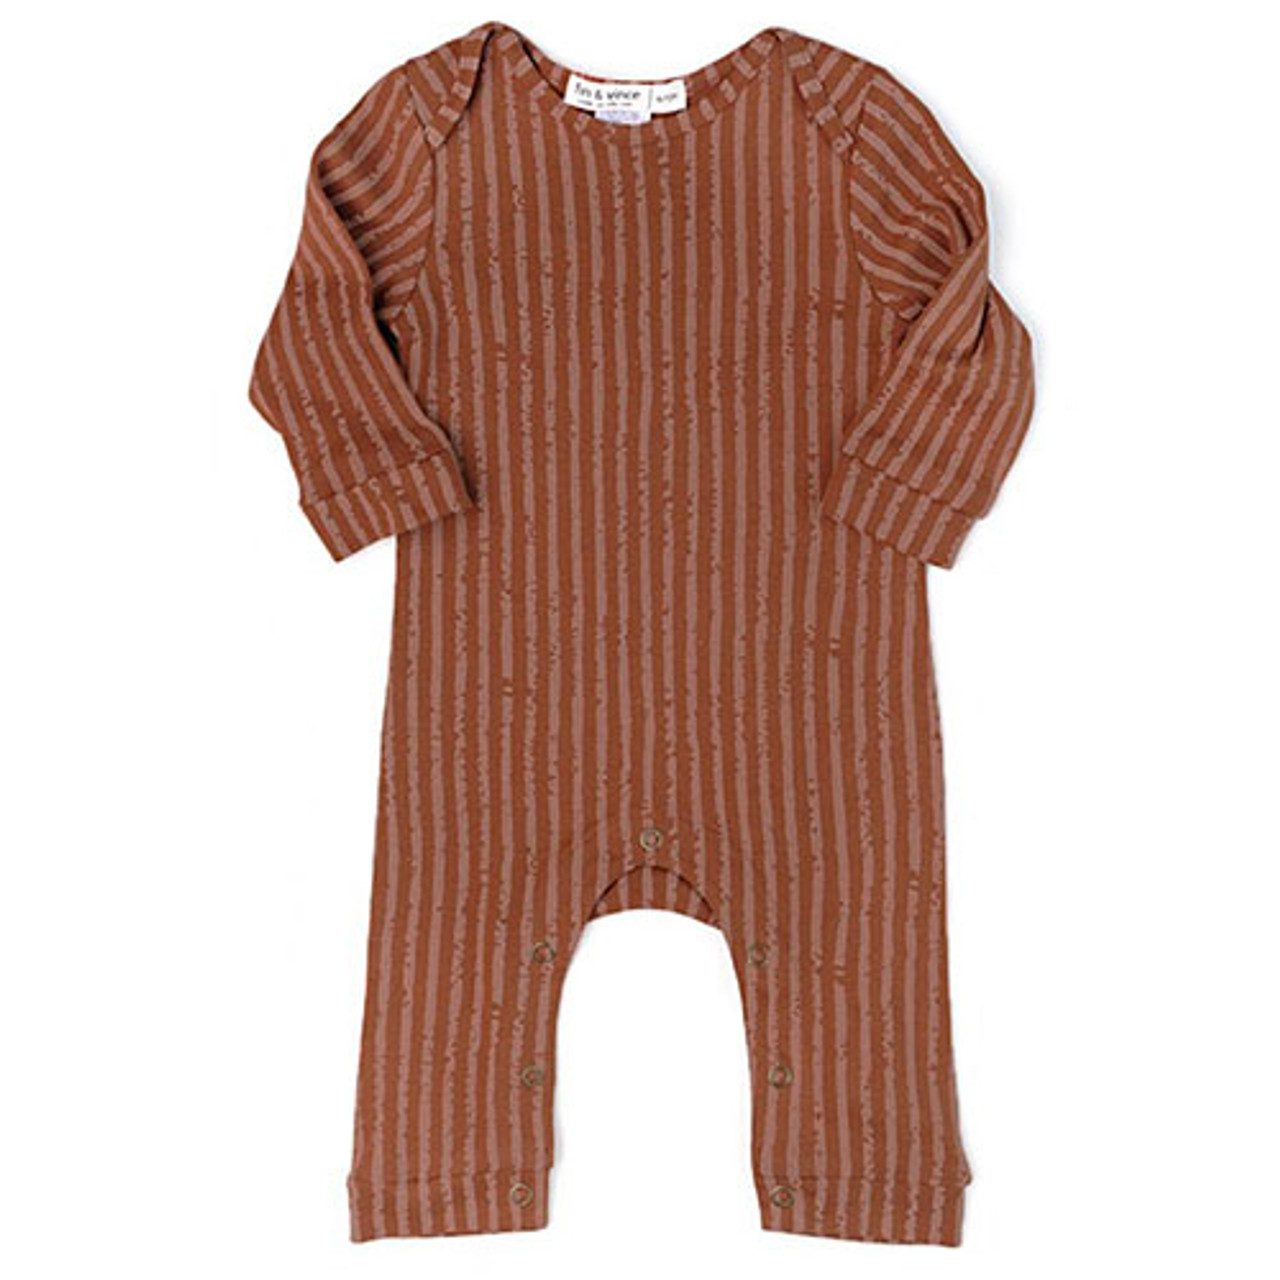 69f901b528cd8 Fin & Vince Stripe Romper - Spearmint Ventures, LLC